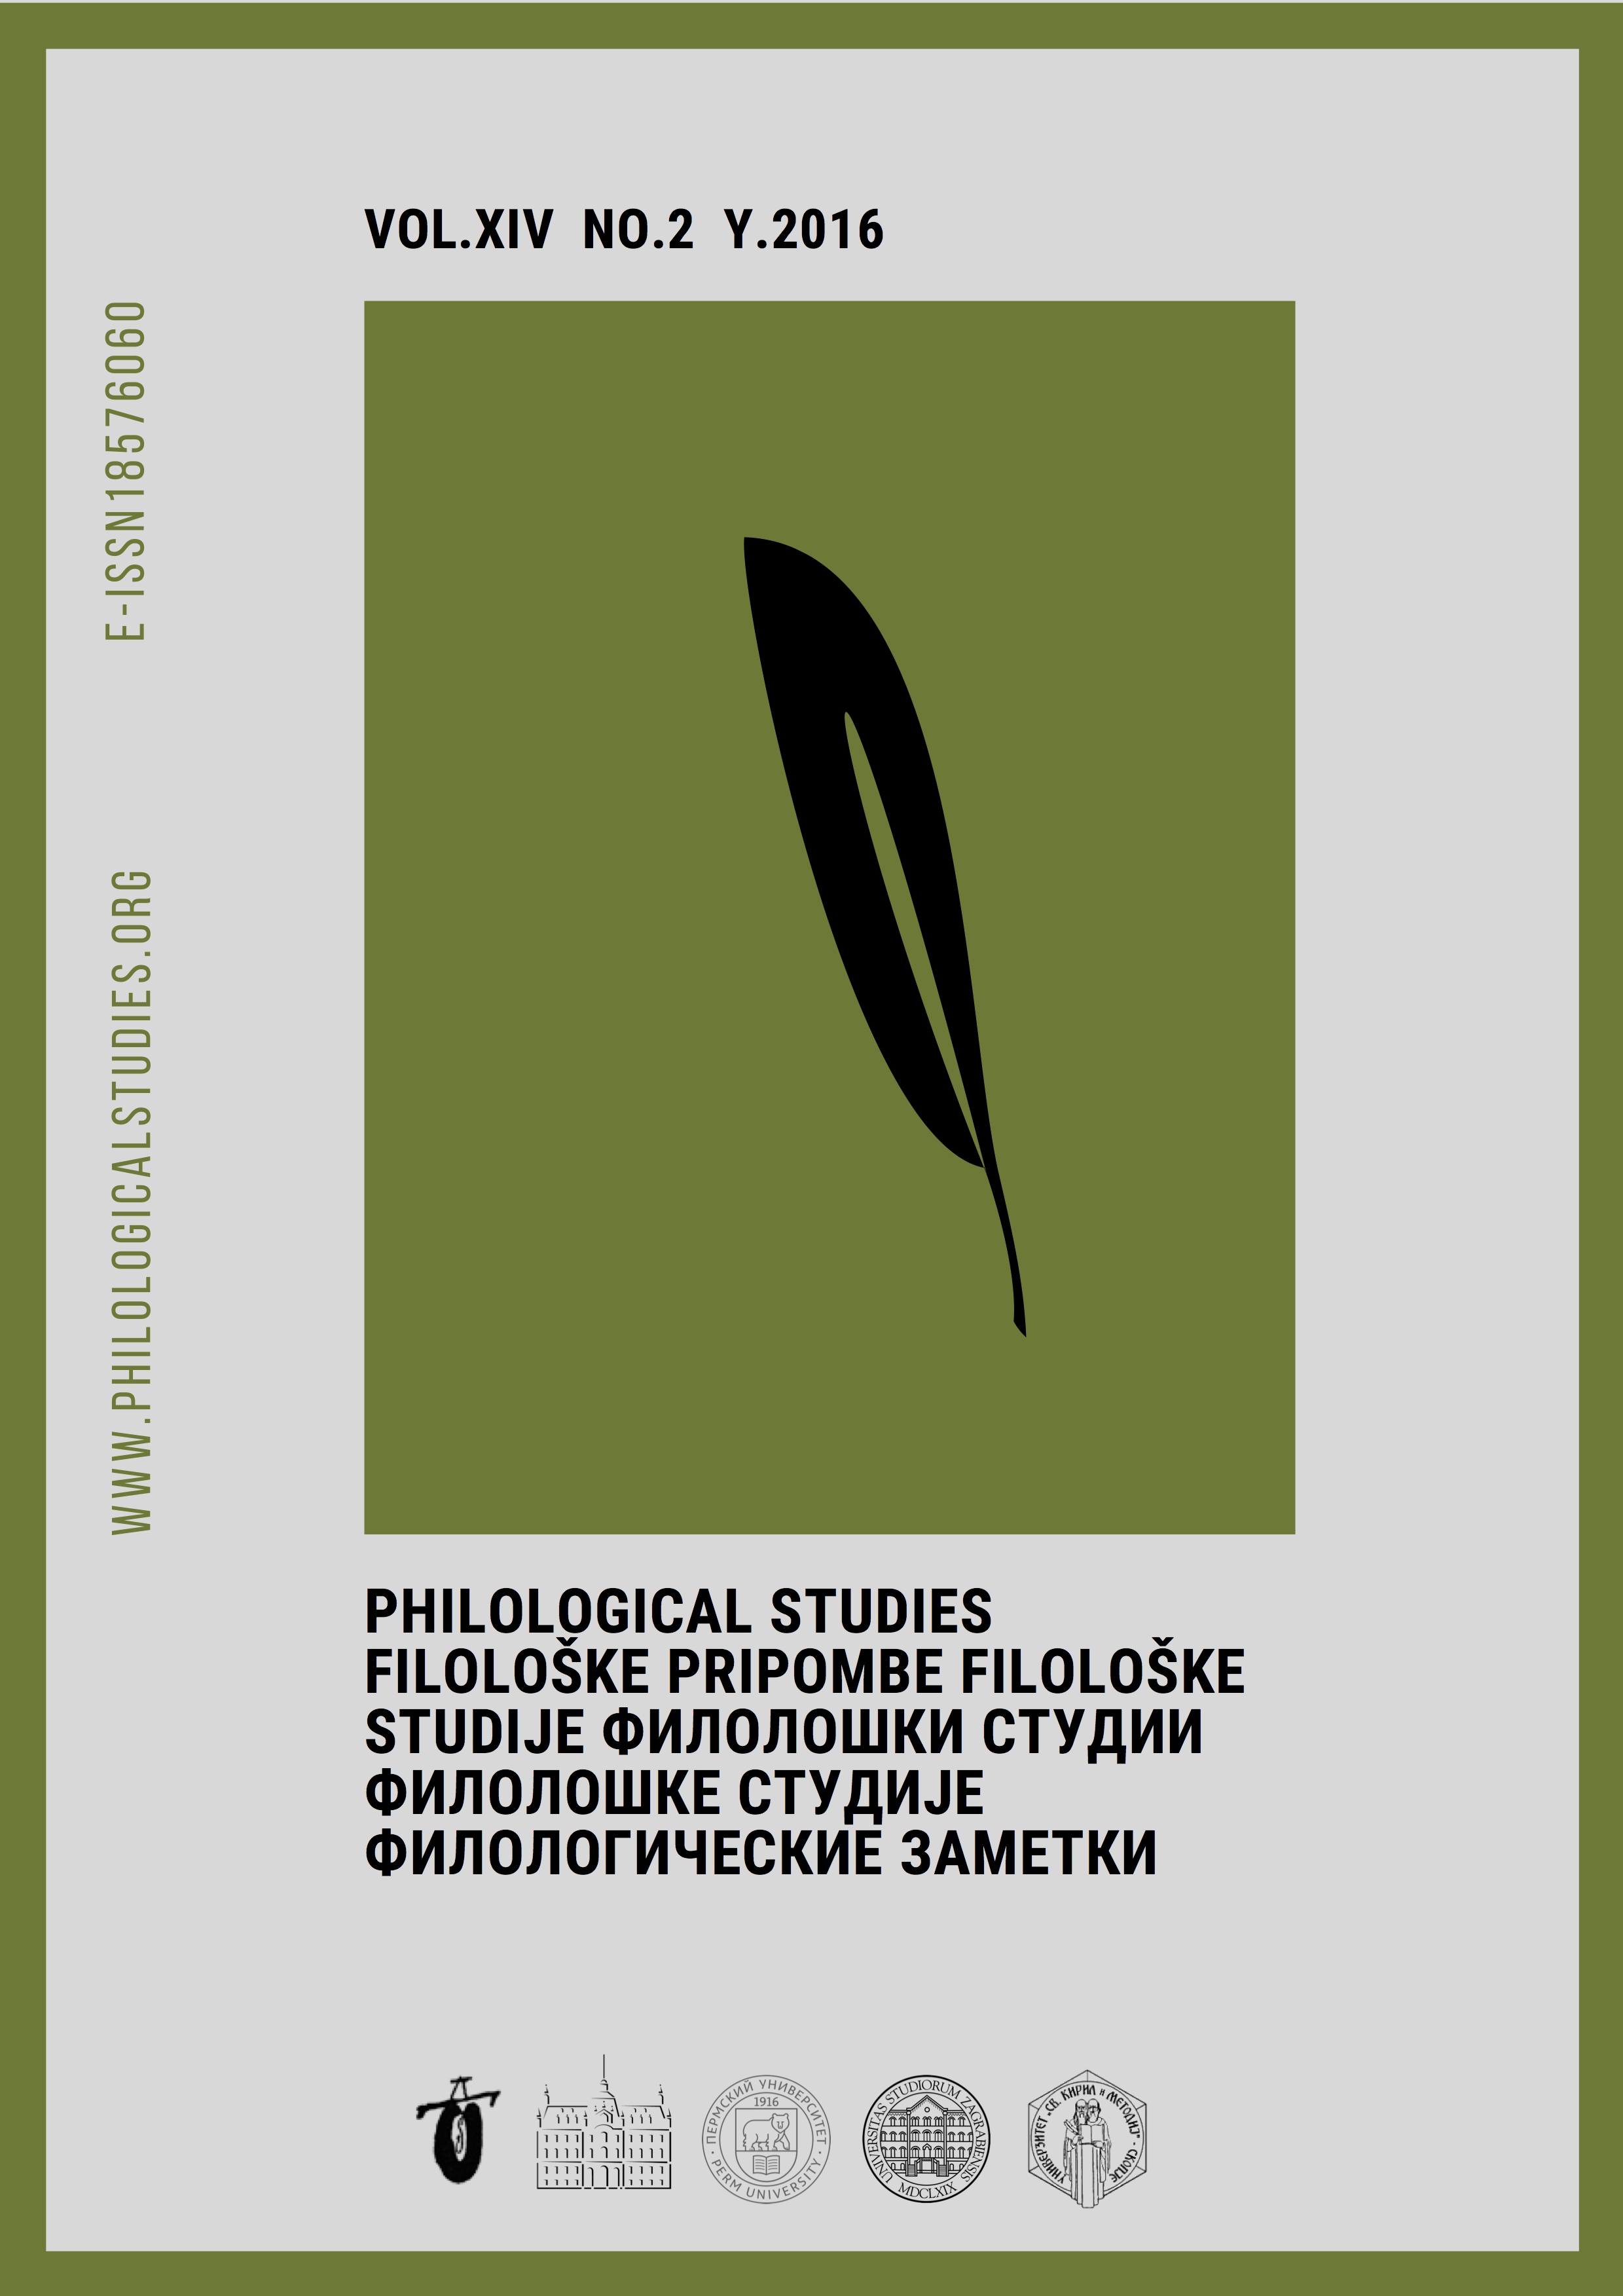 Philological Studies Vol.14 No.2 2016